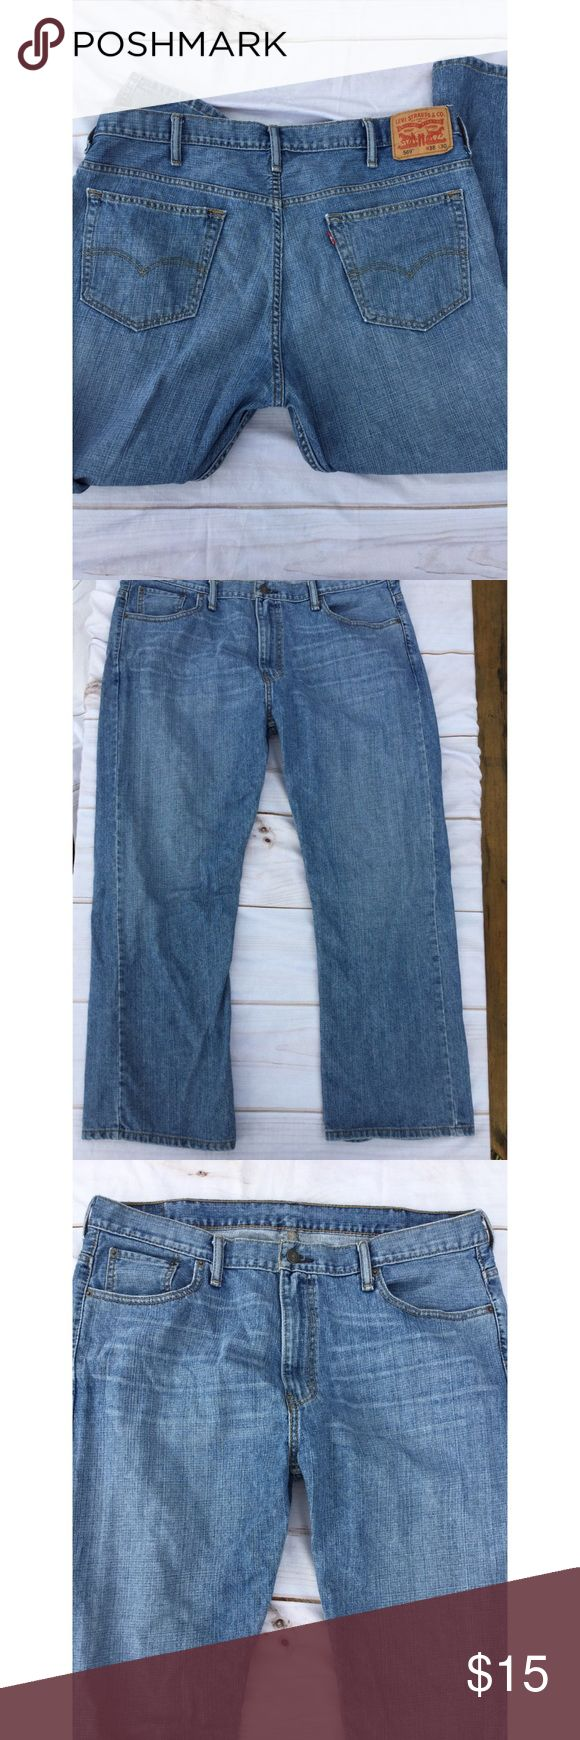 Levi 569 Straight Jeans 38 x 30 Levi 569 Jeans 38 x 30.  Zip Fly.   Nice overall condition and smoke free home. Thanks! Levi's Jeans Straight